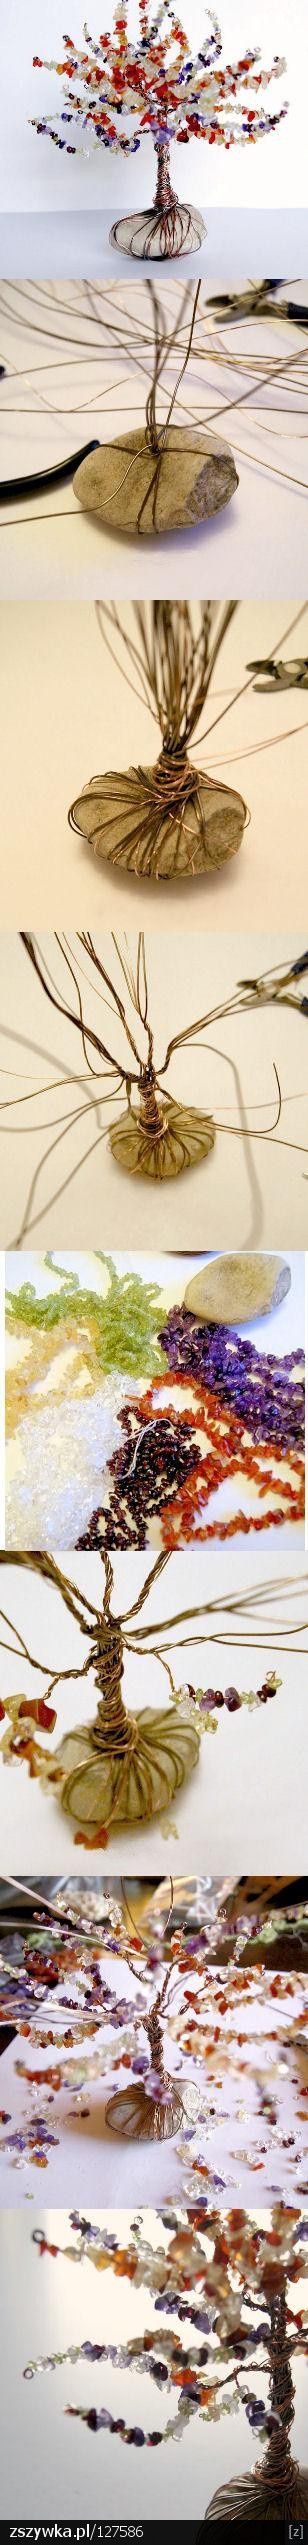 I'm pinning this to my jewelry making board, but this is a fantastic DIY idea for a paperweight! Most jewelry makers who work with wire should have the materials. :) Perfect for the lesser used glass chip beads I have lying around.